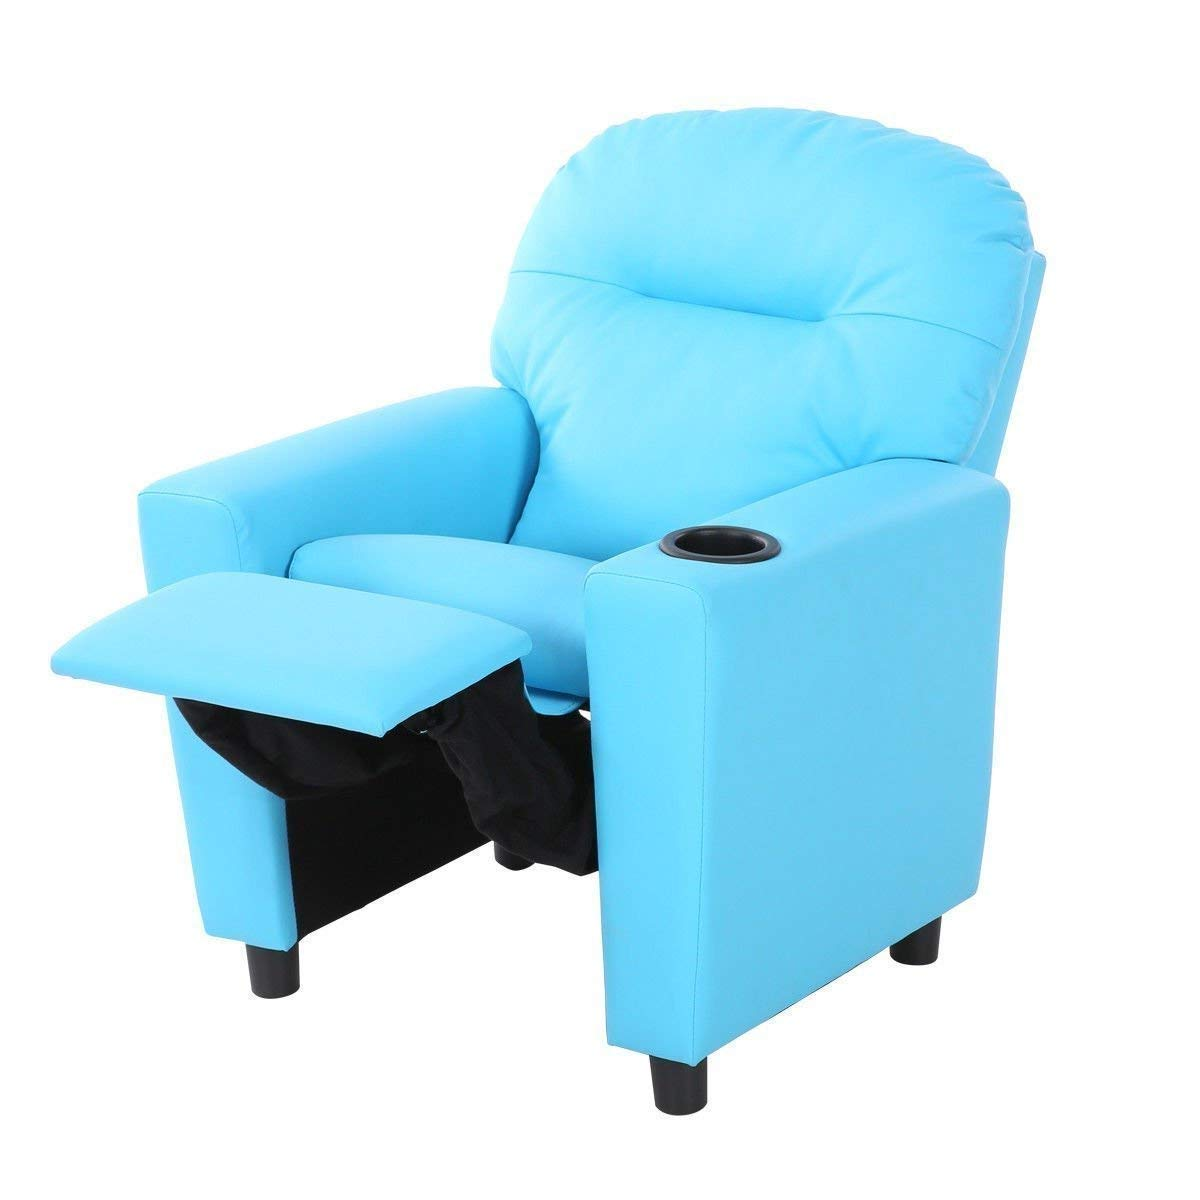 HONEY JOY Contemporary Kids Recliner, PU Leather Lounge Furniture for Boys & Girls W/Cup Holder, Children Sofa Chair (Blue)